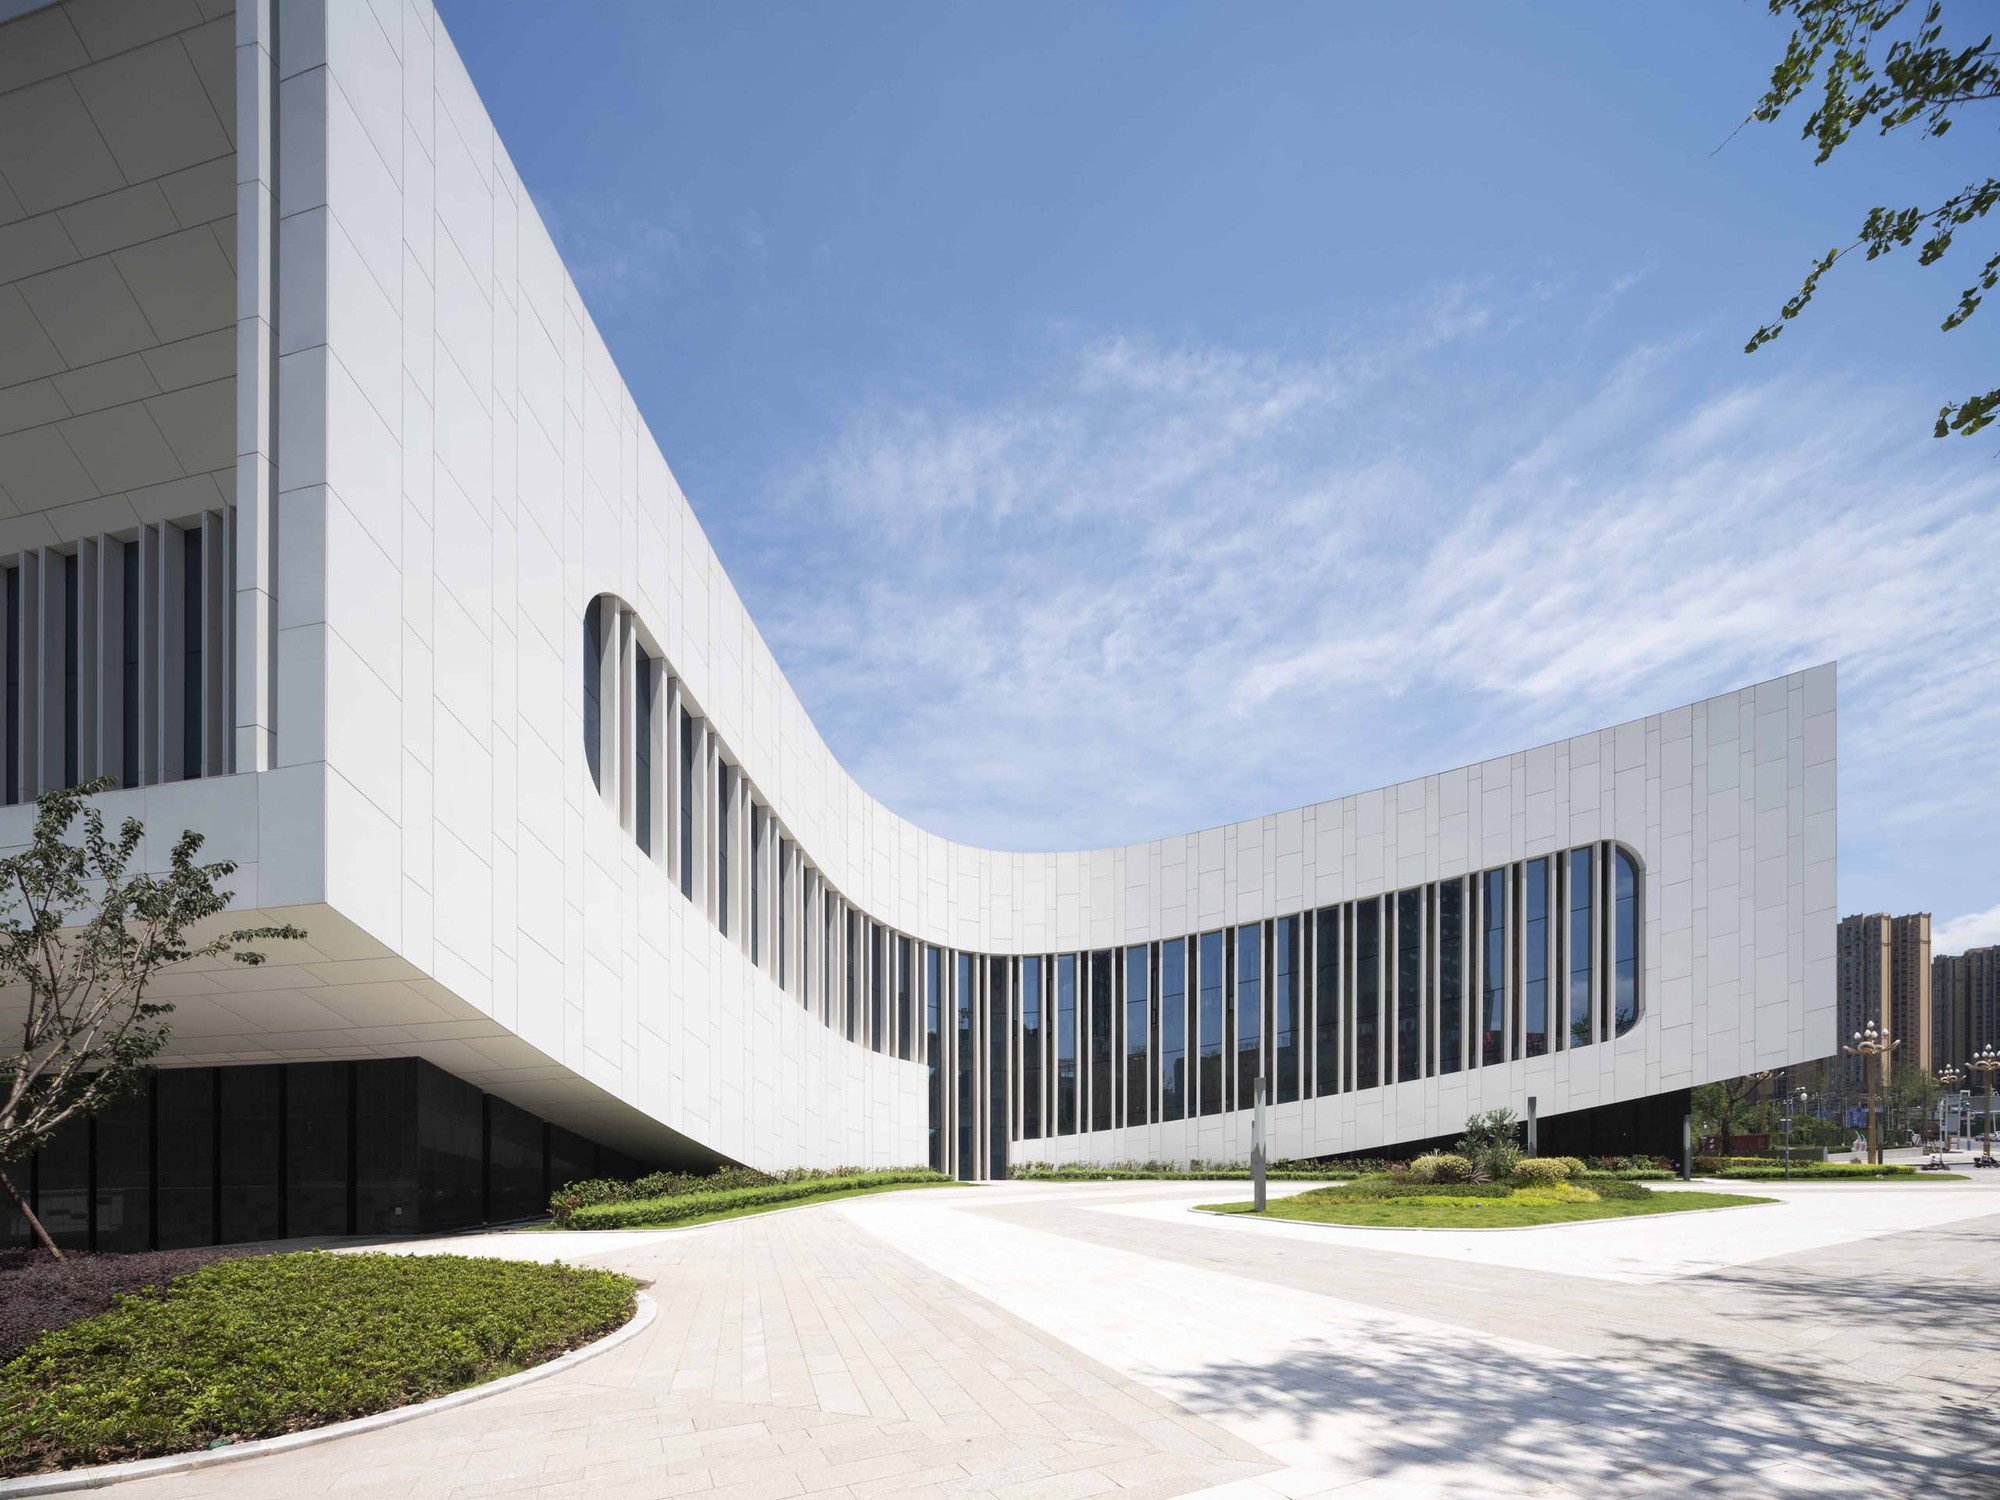 Yibin Science and Technology Museum / TJAD